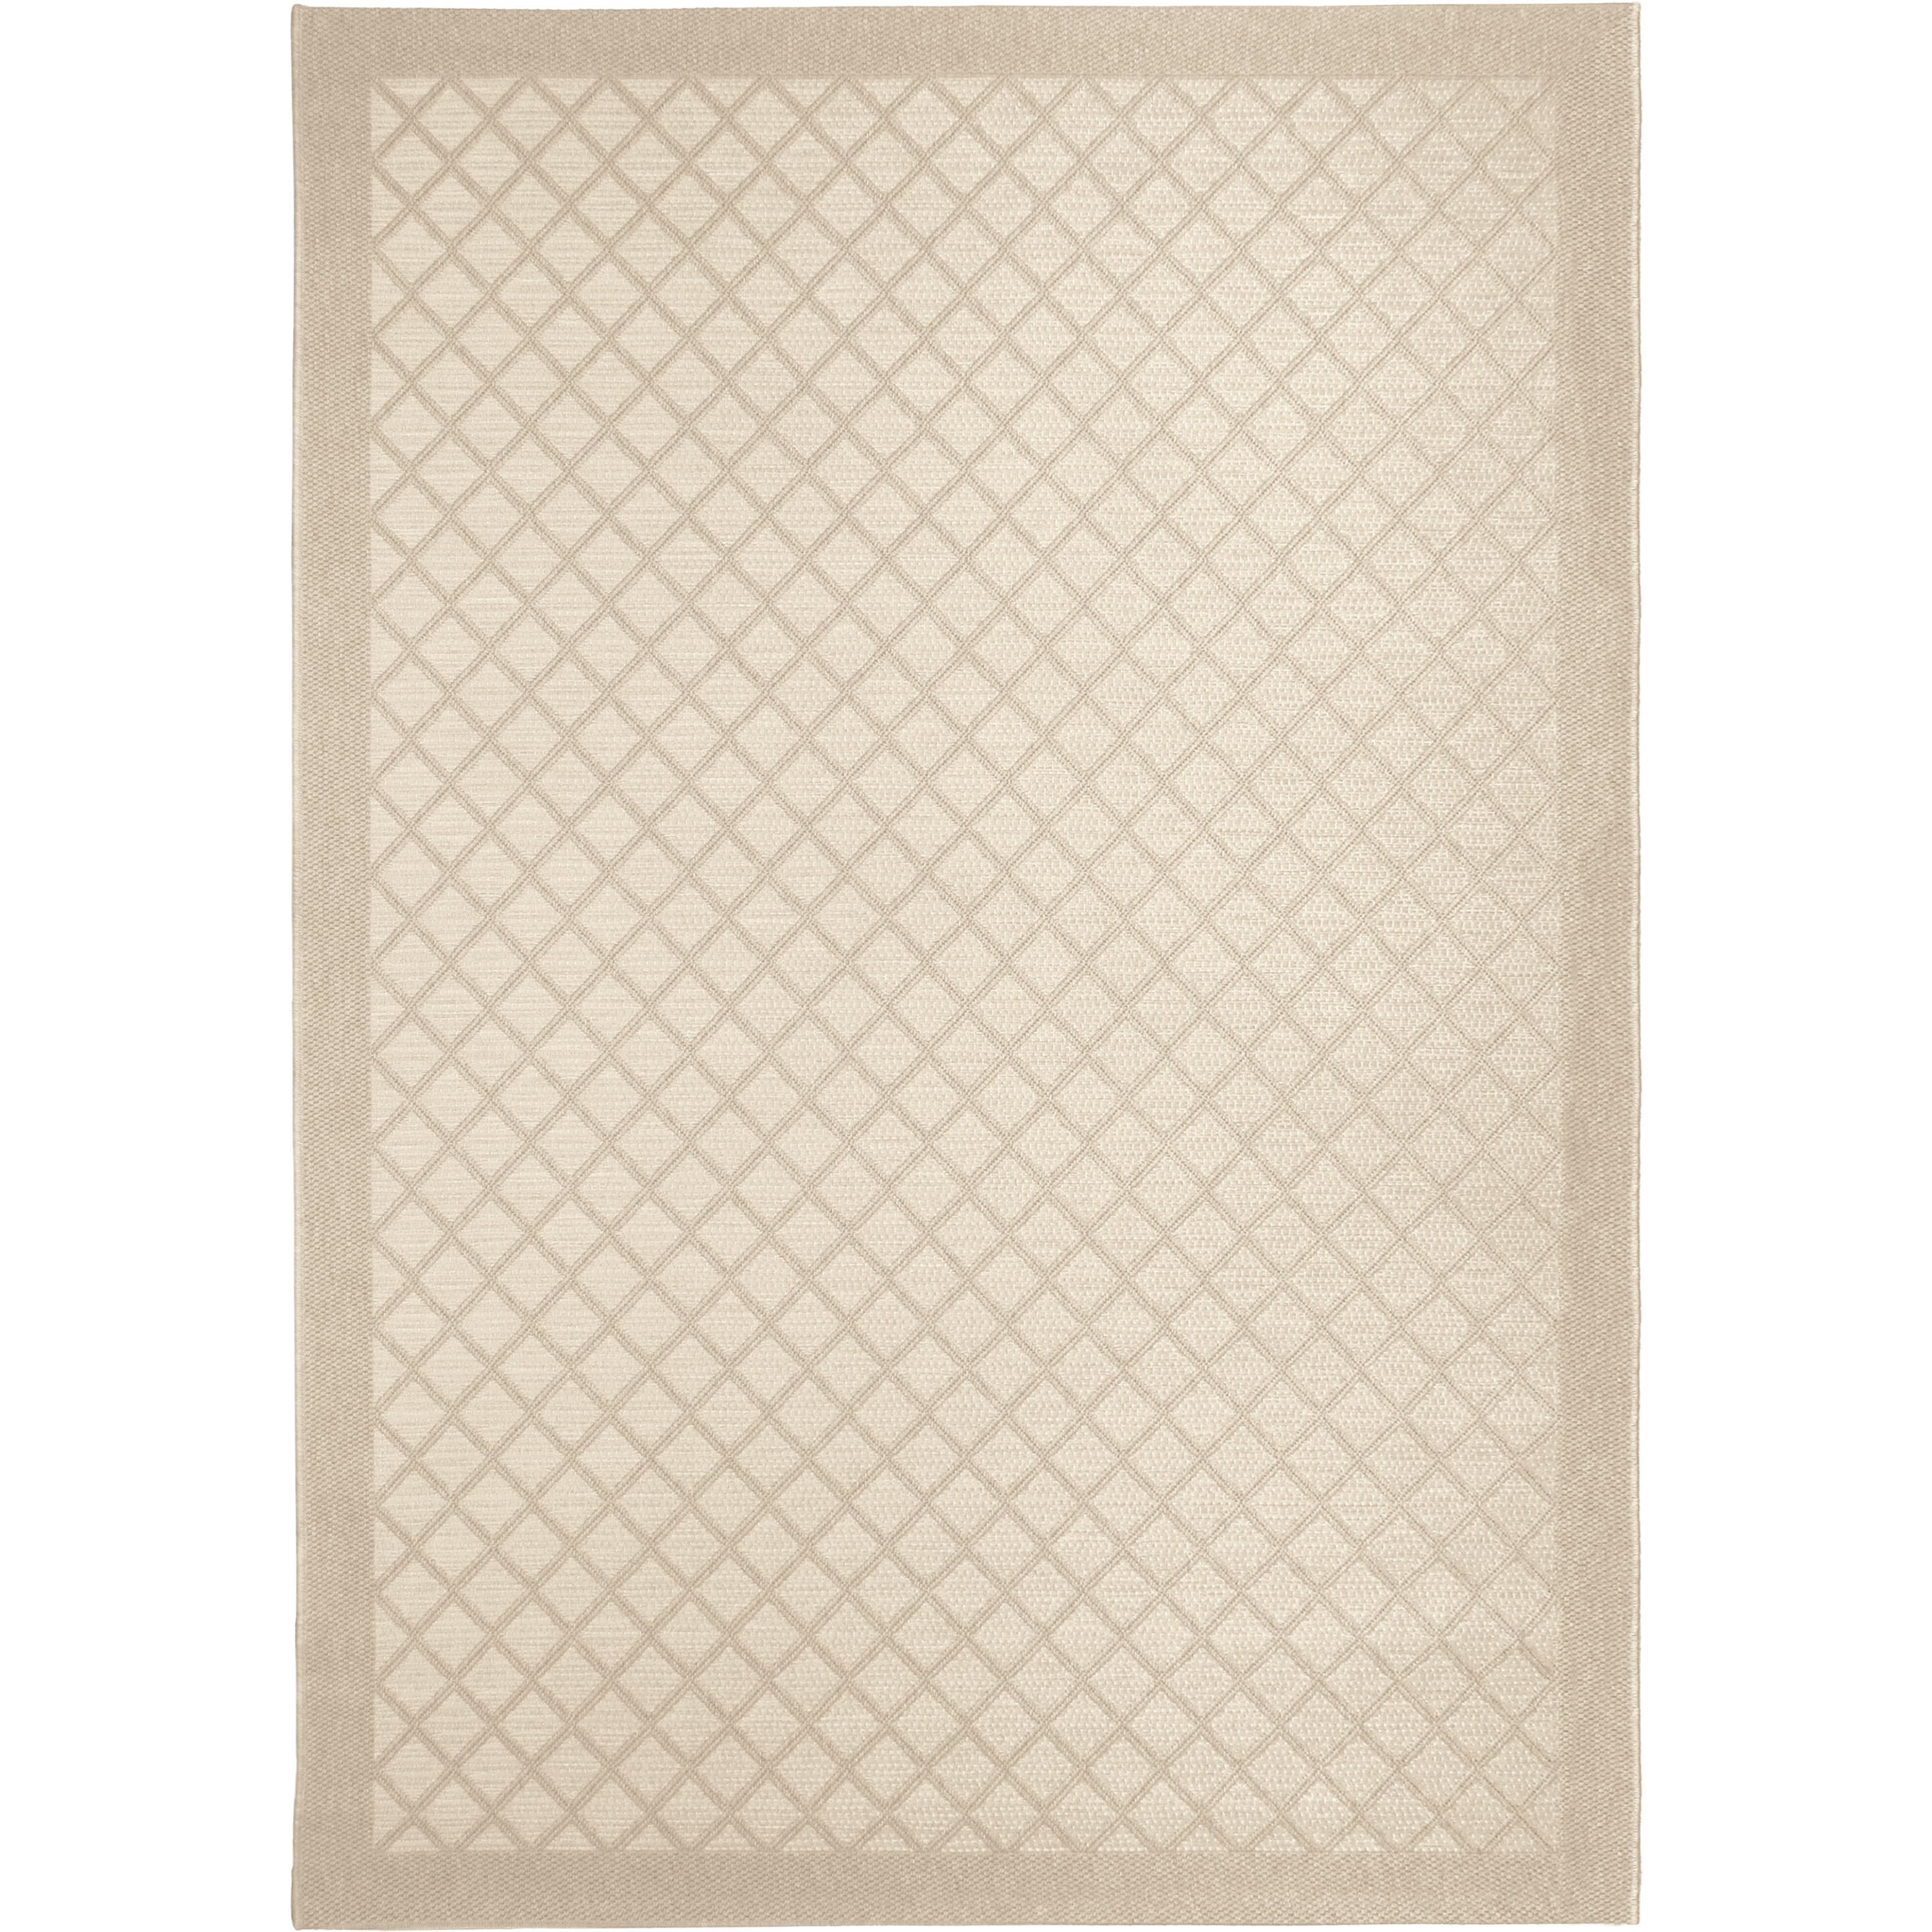 """Jersey Home Fusion Trellis ivory 7'7"""" x 10'10"""" Rug by Orian Rugs at Mueller Furniture"""